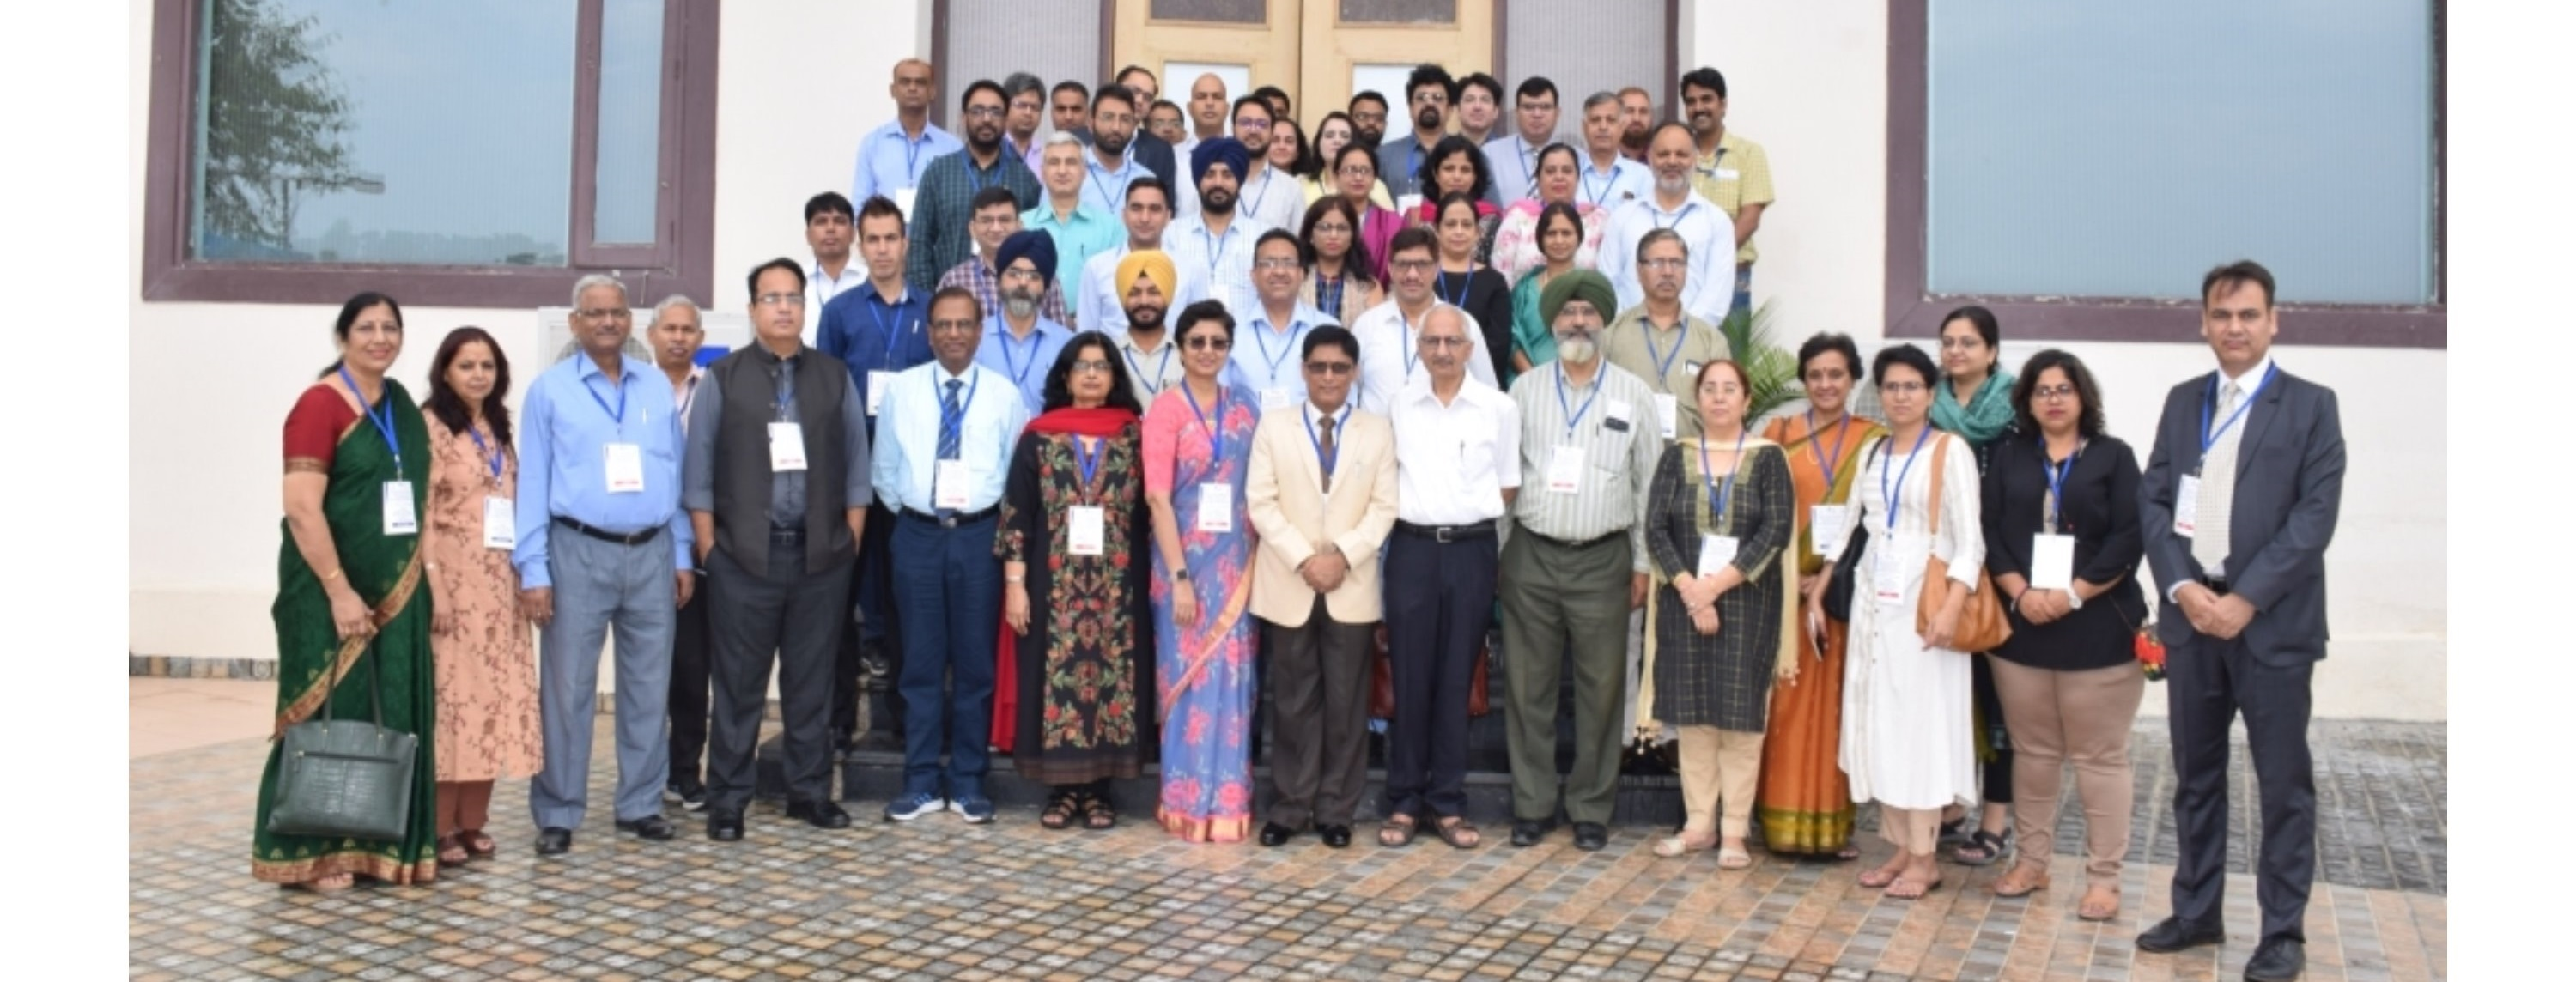 Workshop on Research Methodology and Research Paper Writing Techniques for MRU & MRHRU, Sept. 5-6, 2019, Dharamshala, Himachal Pradesh